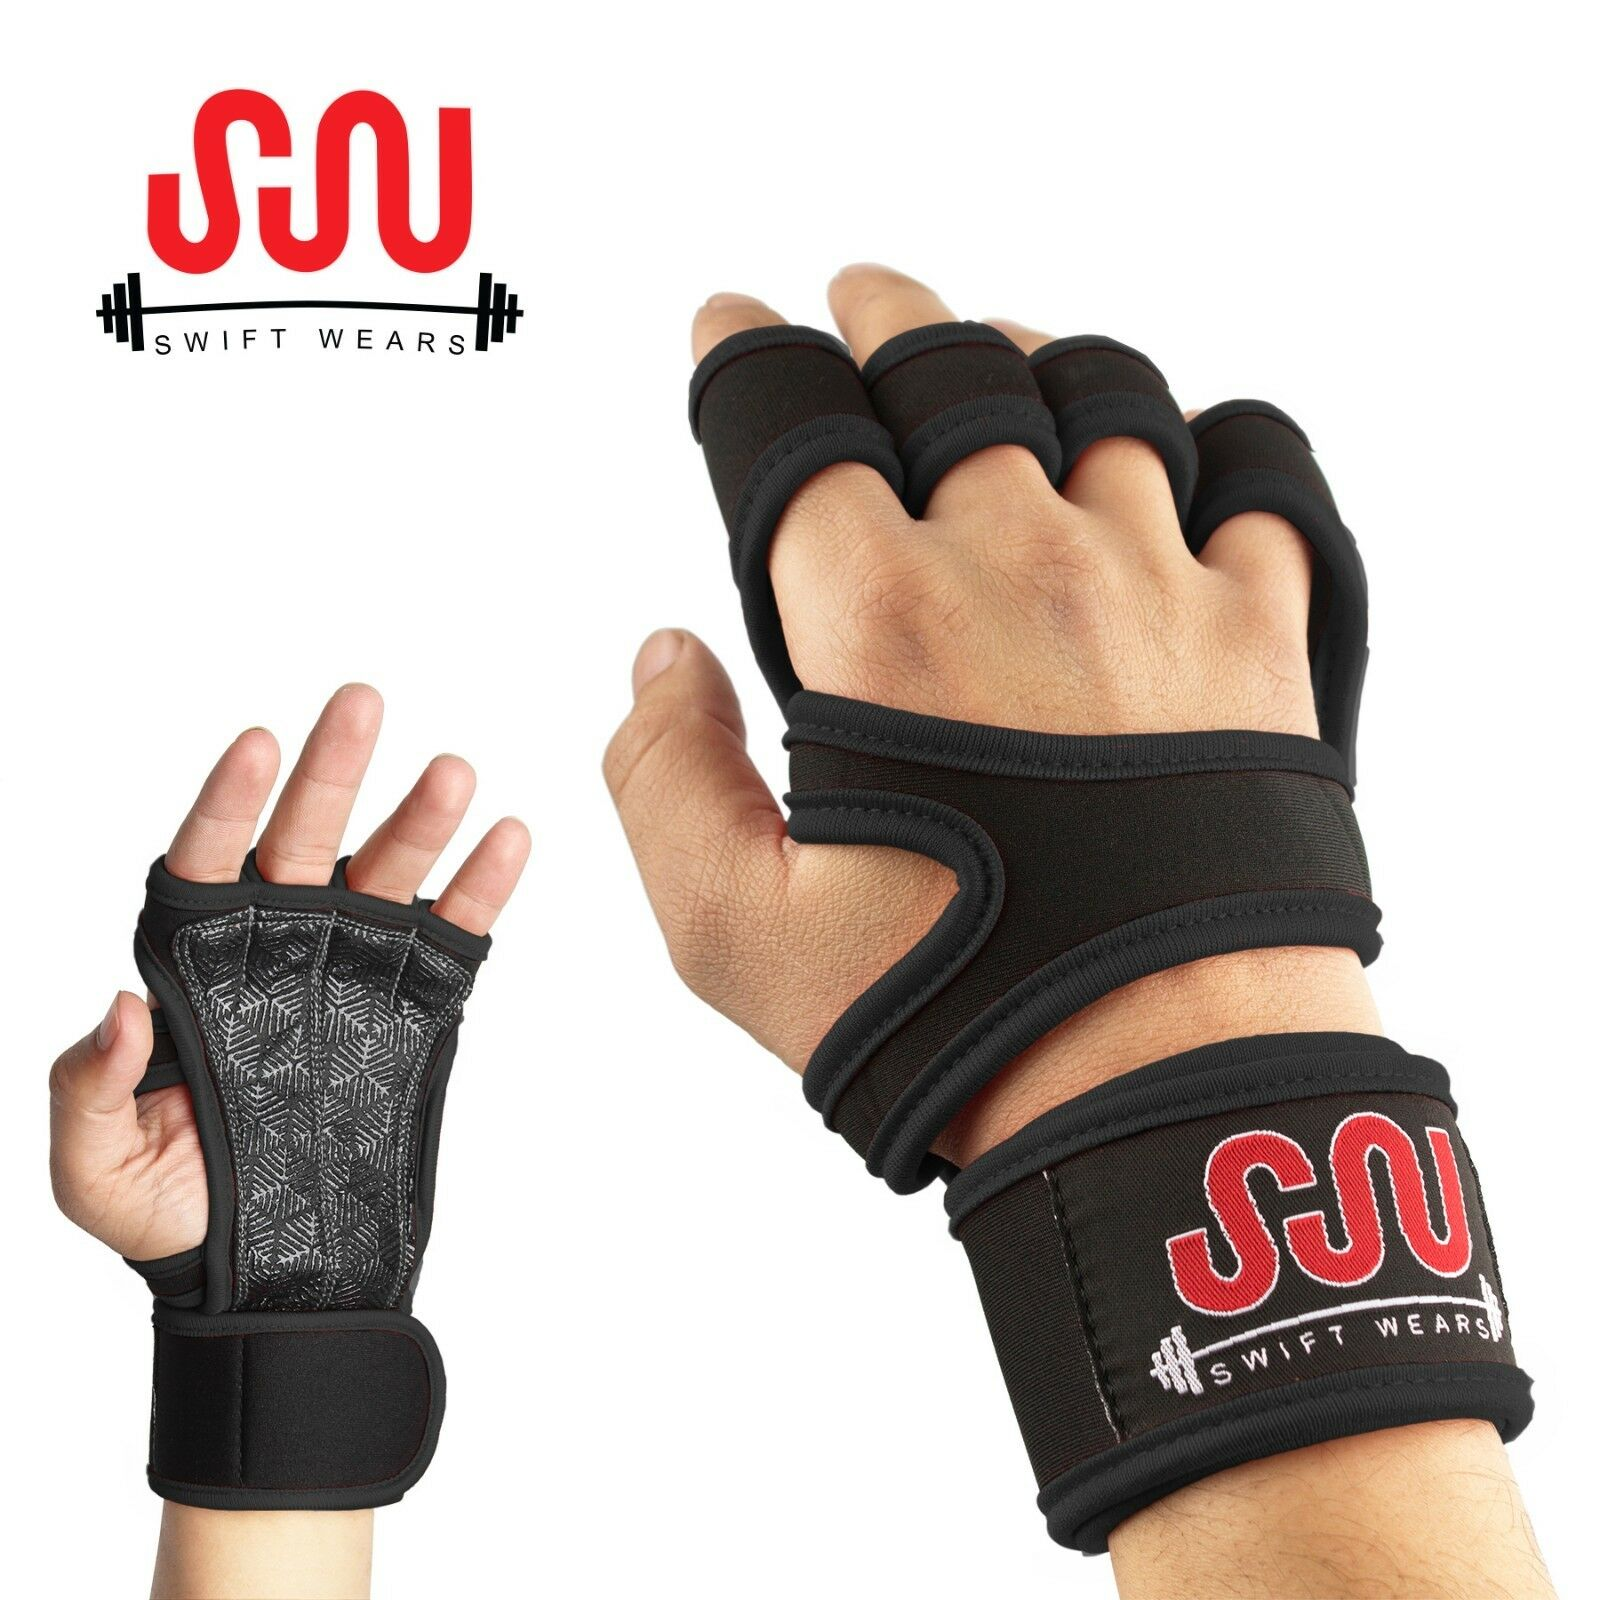 Full Palm Protection /&Extra Grip Workout Gloves for Men/&Women Glaring Way Weight Lifting Gloves with Built-in Wrist Wrap for Exercise